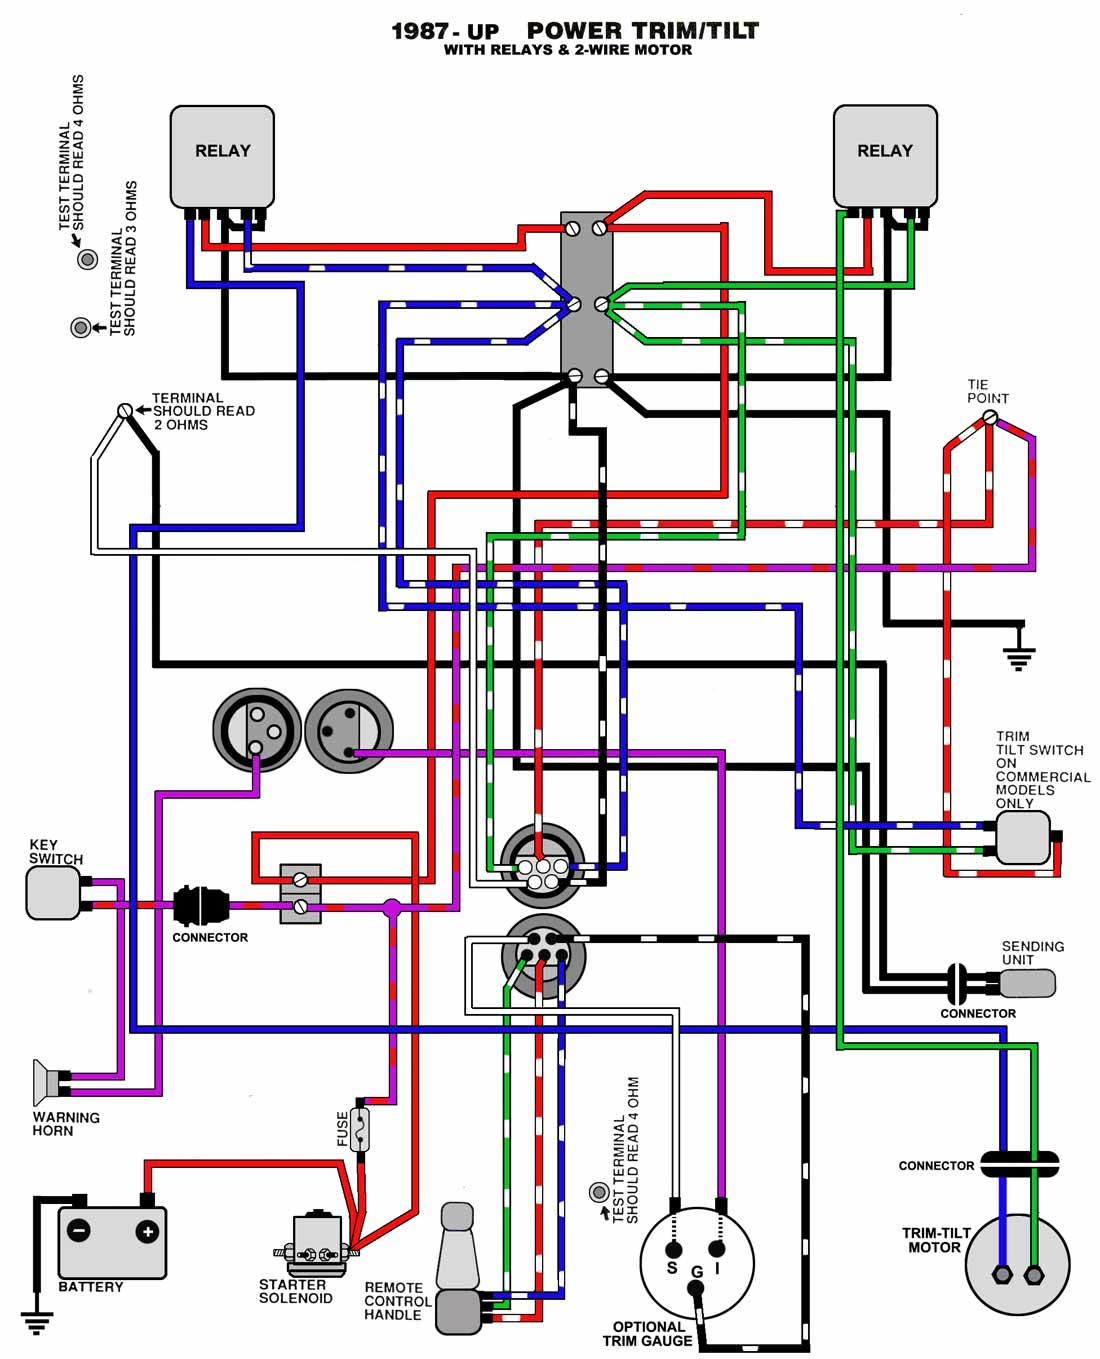 TnT_87_UP mastertech marine evinrude johnson outboard wiring diagrams evinrude wiring diagram at bayanpartner.co